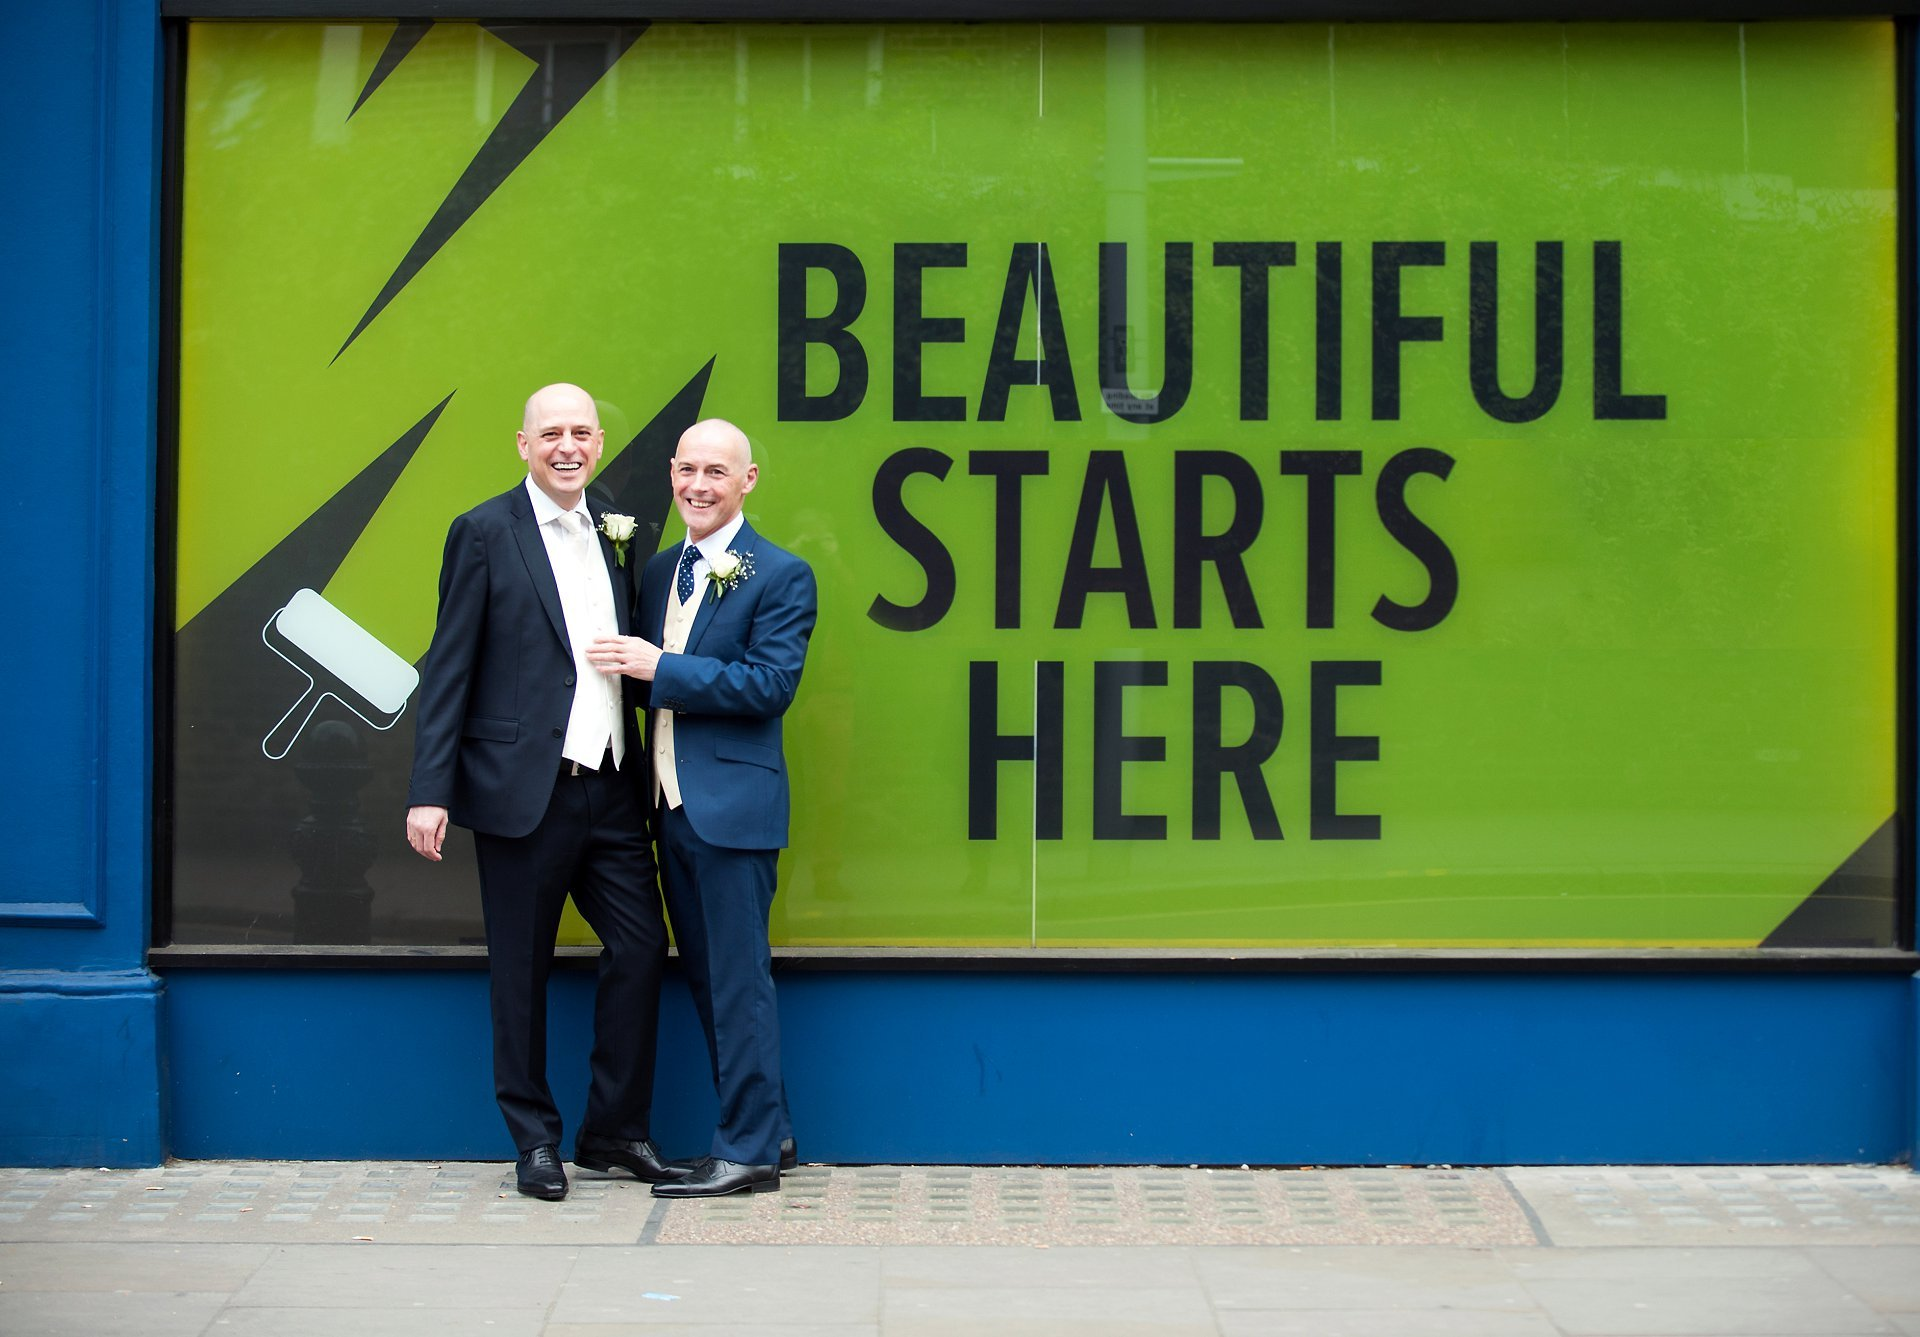 """Jose and George celebrate their marriage on London's King's Road next to a window display """"Beautiful Starts Here"""""""